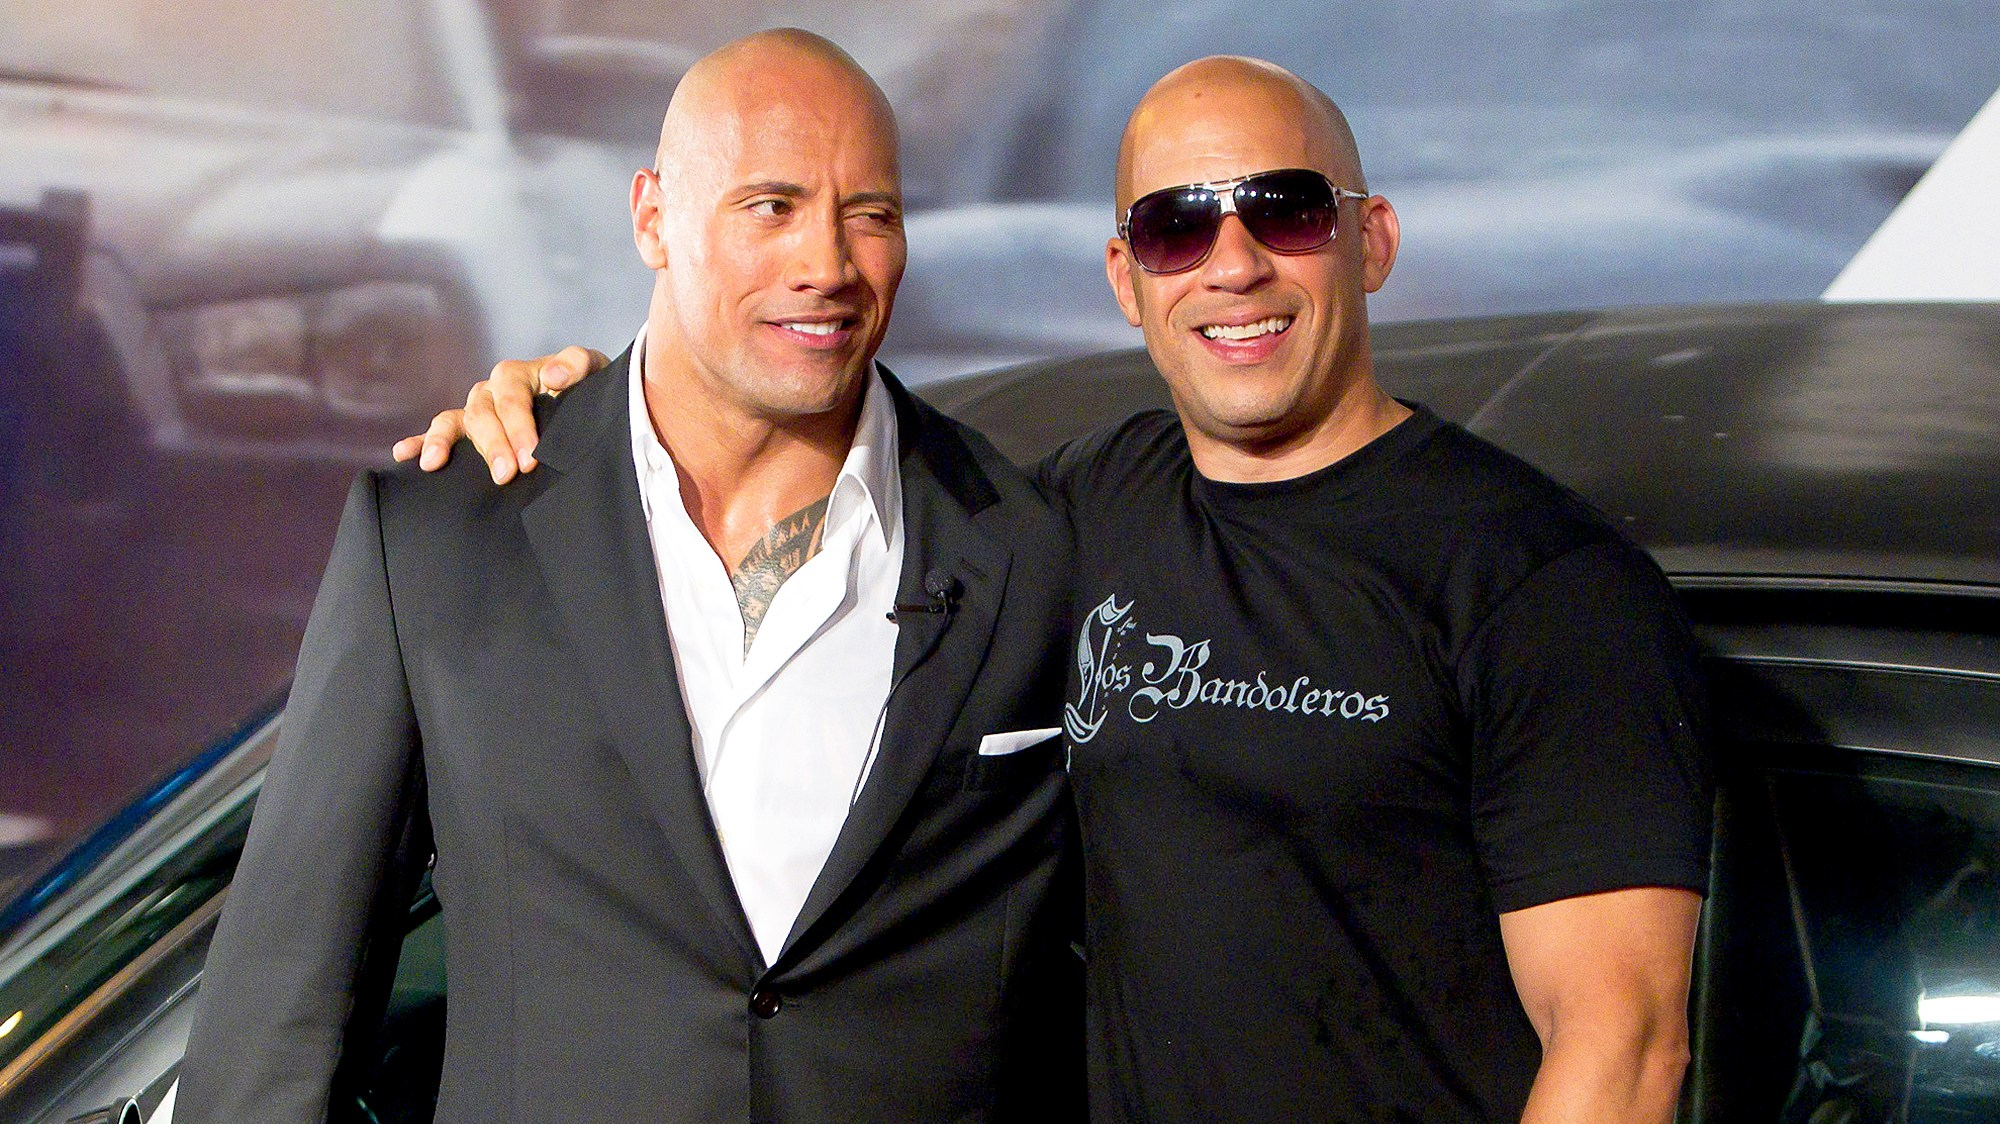 Dwayne 'The Rock' Johnson and Vin Diesel